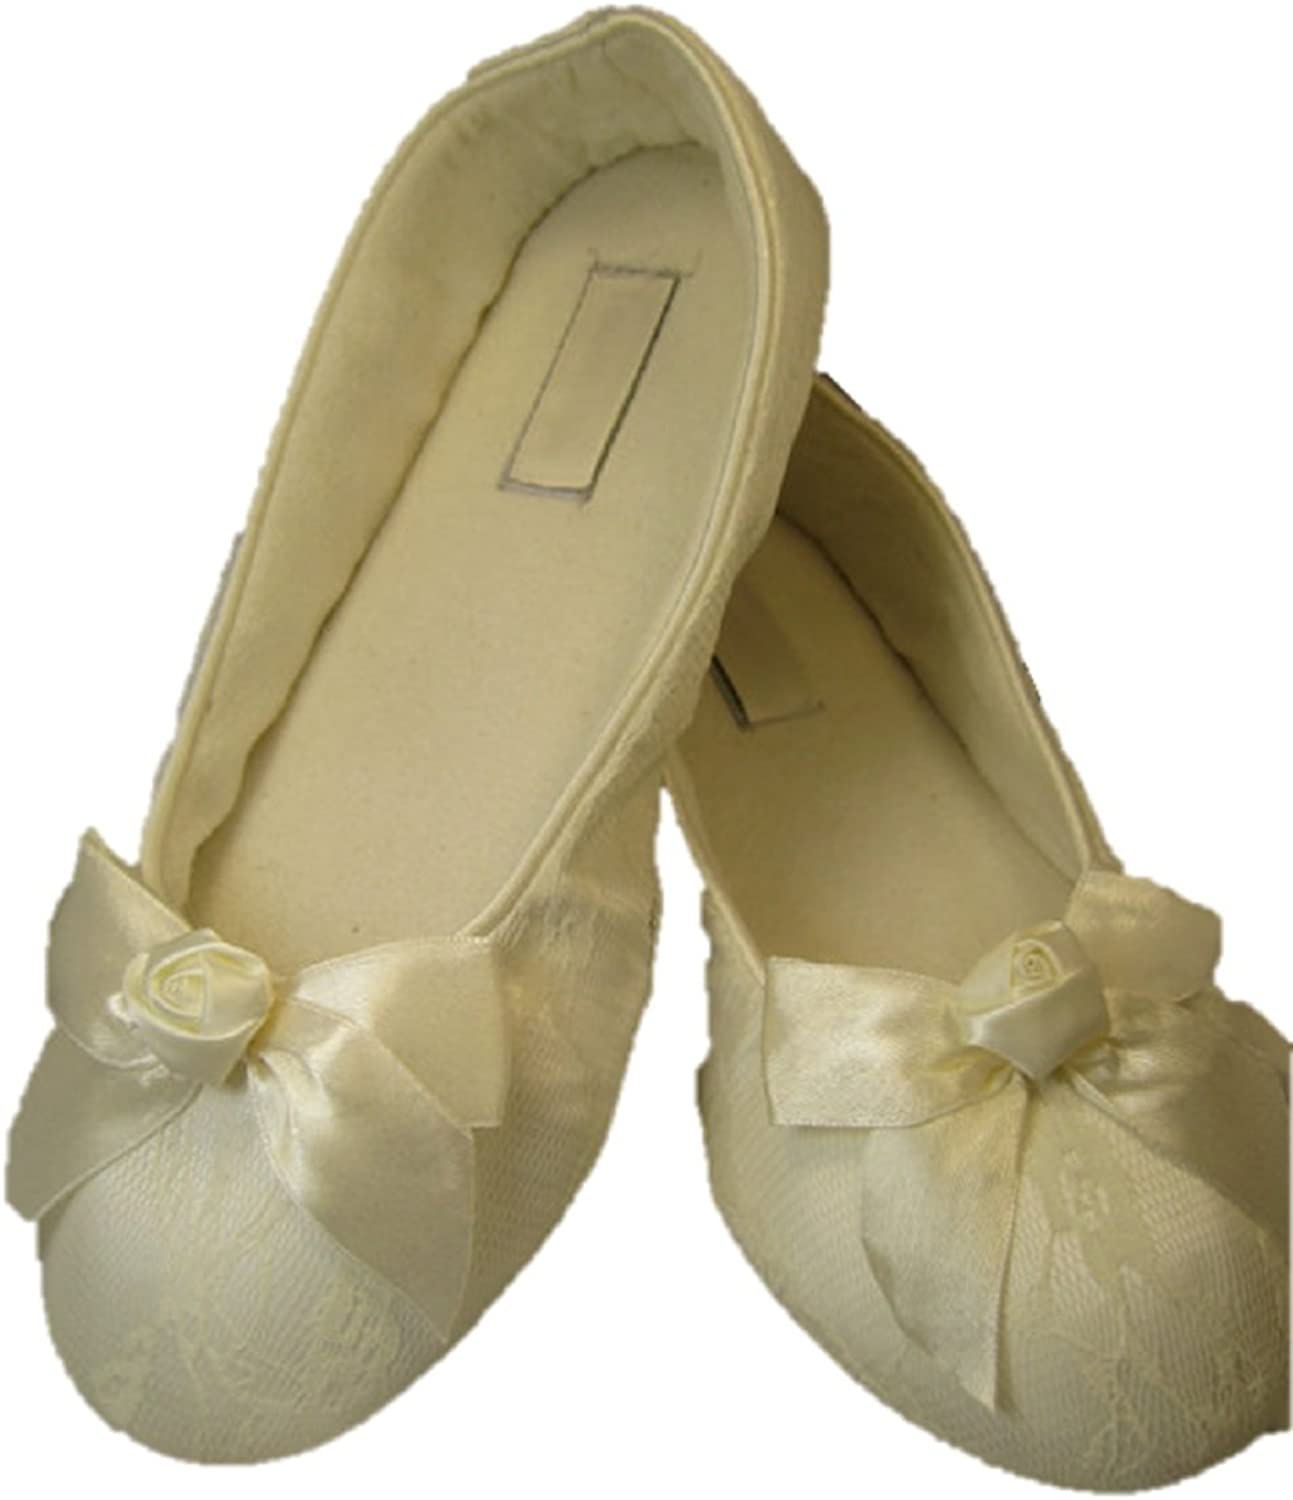 A Bidda Bling Wedding shoes White or Ivory Ballet Flats with Satin Flower